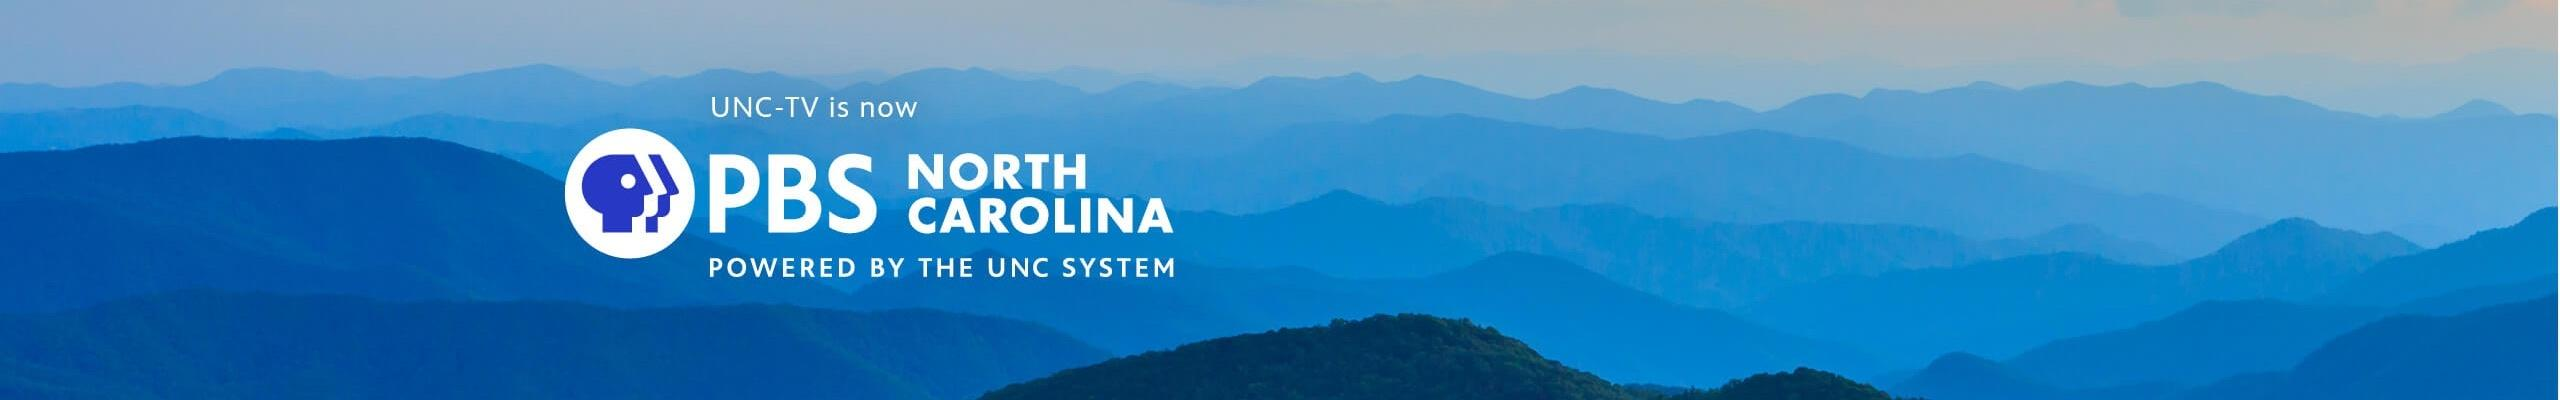 UNC-TV is now PBS North Carolina Powered By The UNC System